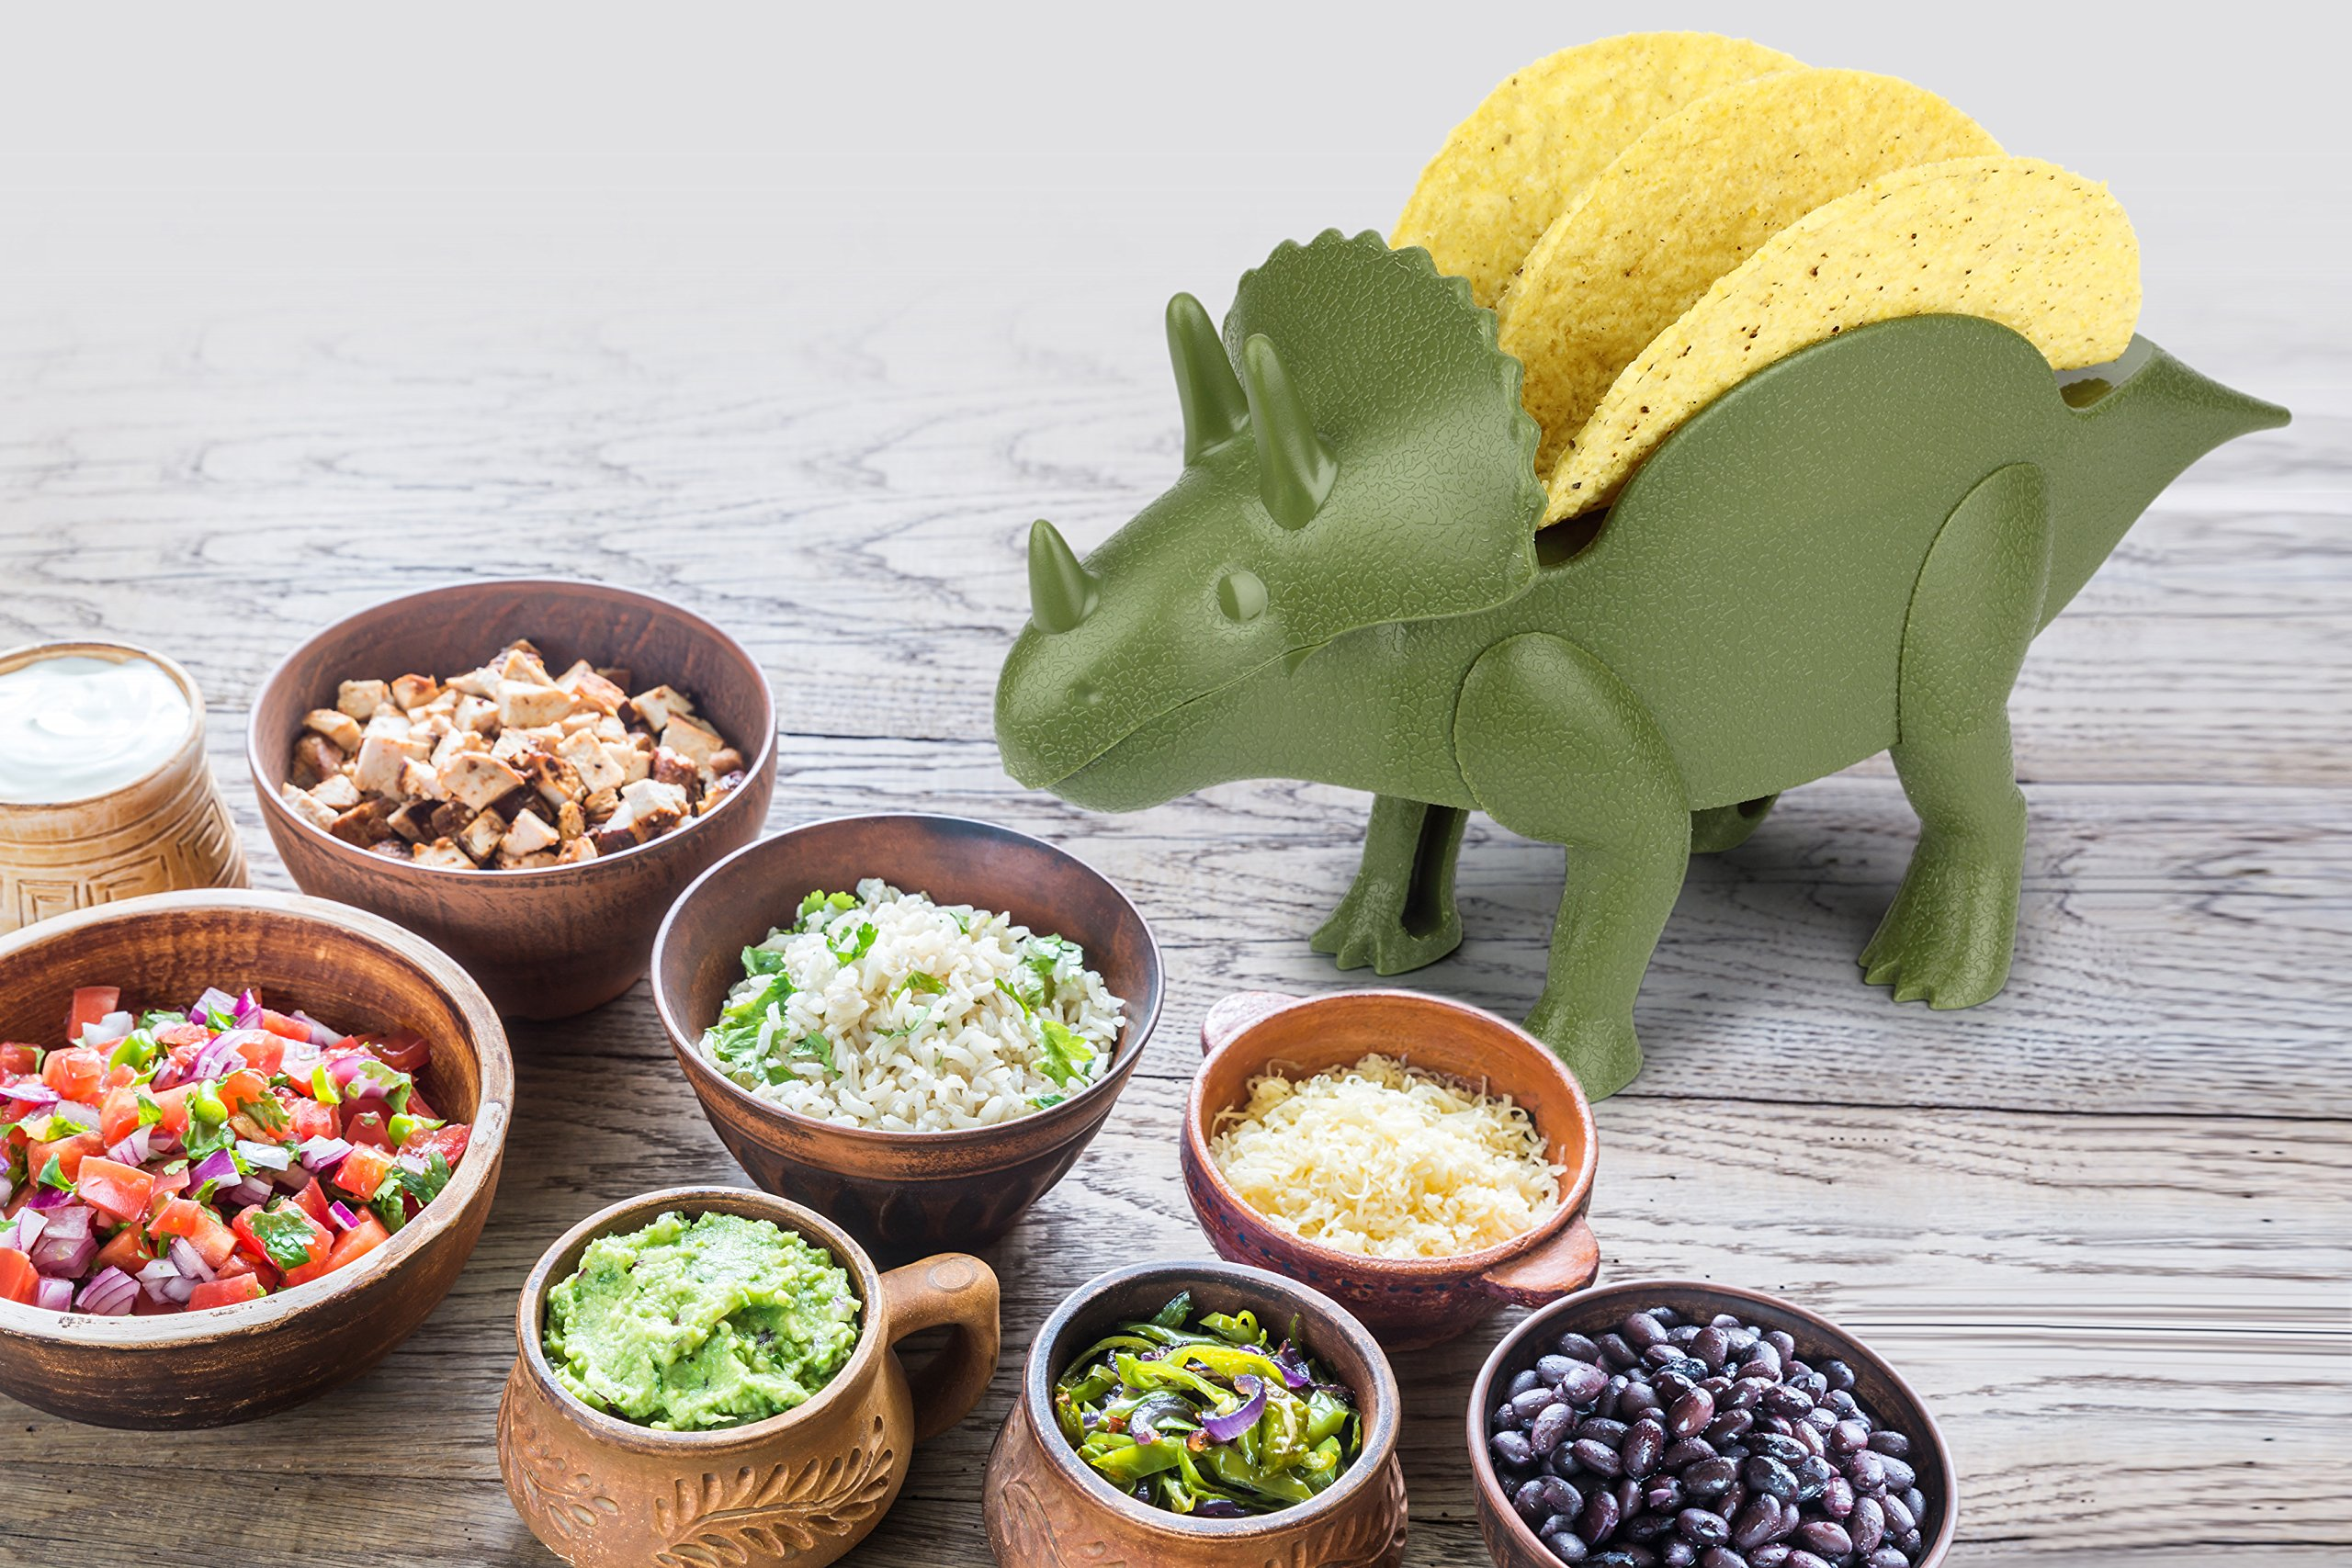 KidsFunwares TriceraTACO Taco Holder - The Ultimate Prehistoric Taco Stand for Jurassic Taco Tuesdays and Dinosaur Parties - Holds 2 Tacos - The Perfect Gift for Kids and Kidults that Love Dinosaurs by KidsFunwares (Image #5)